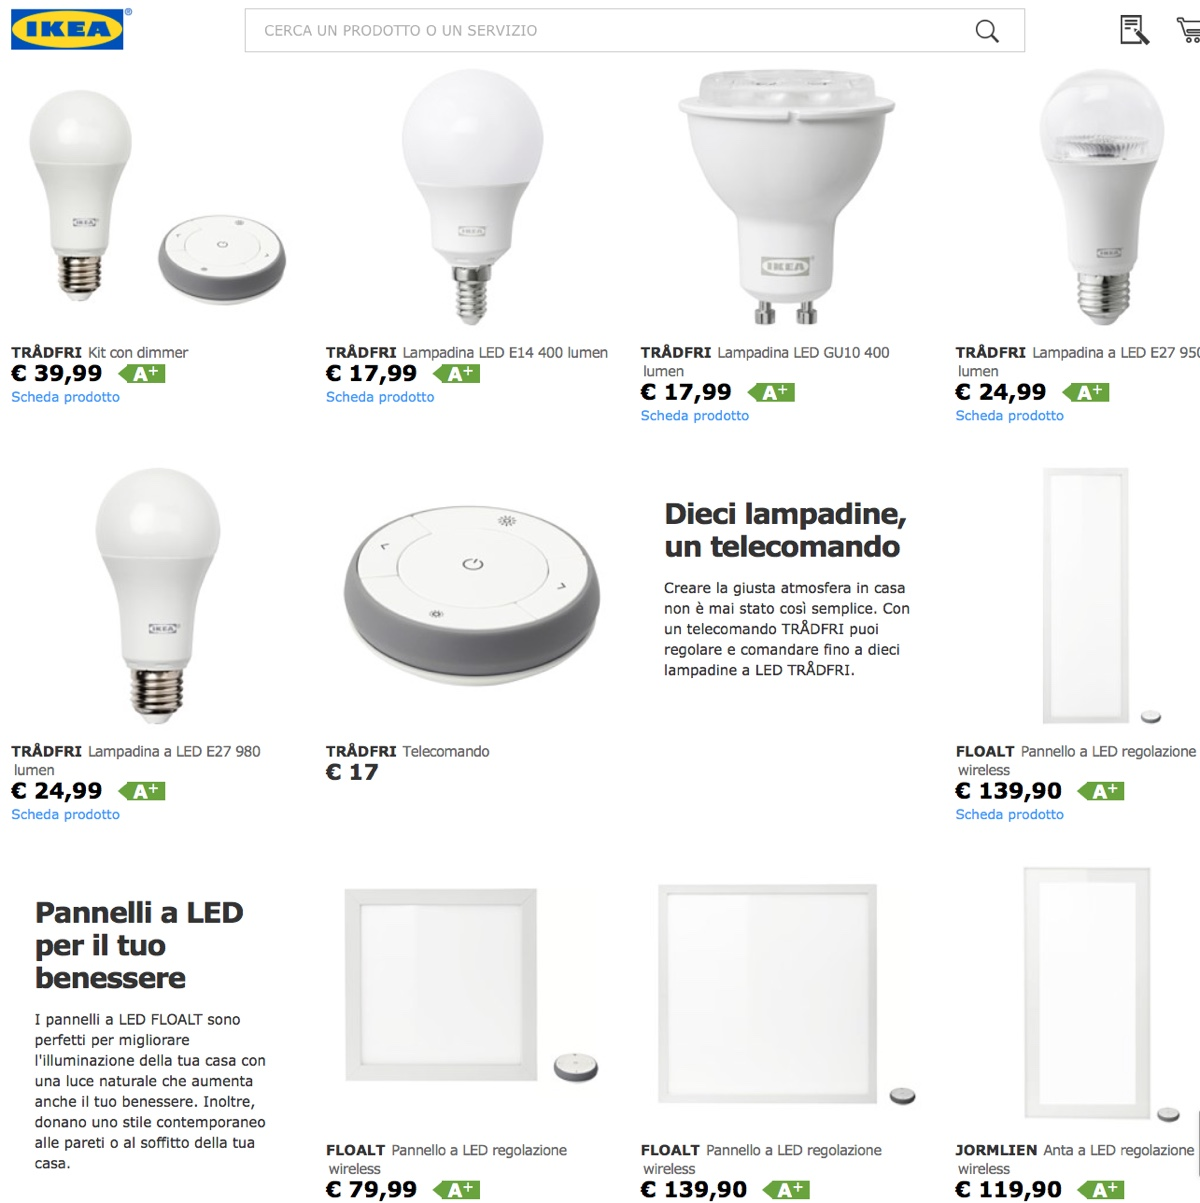 Ikea tradfri le lampade smart per tutti supportano for Lampadine led ikea